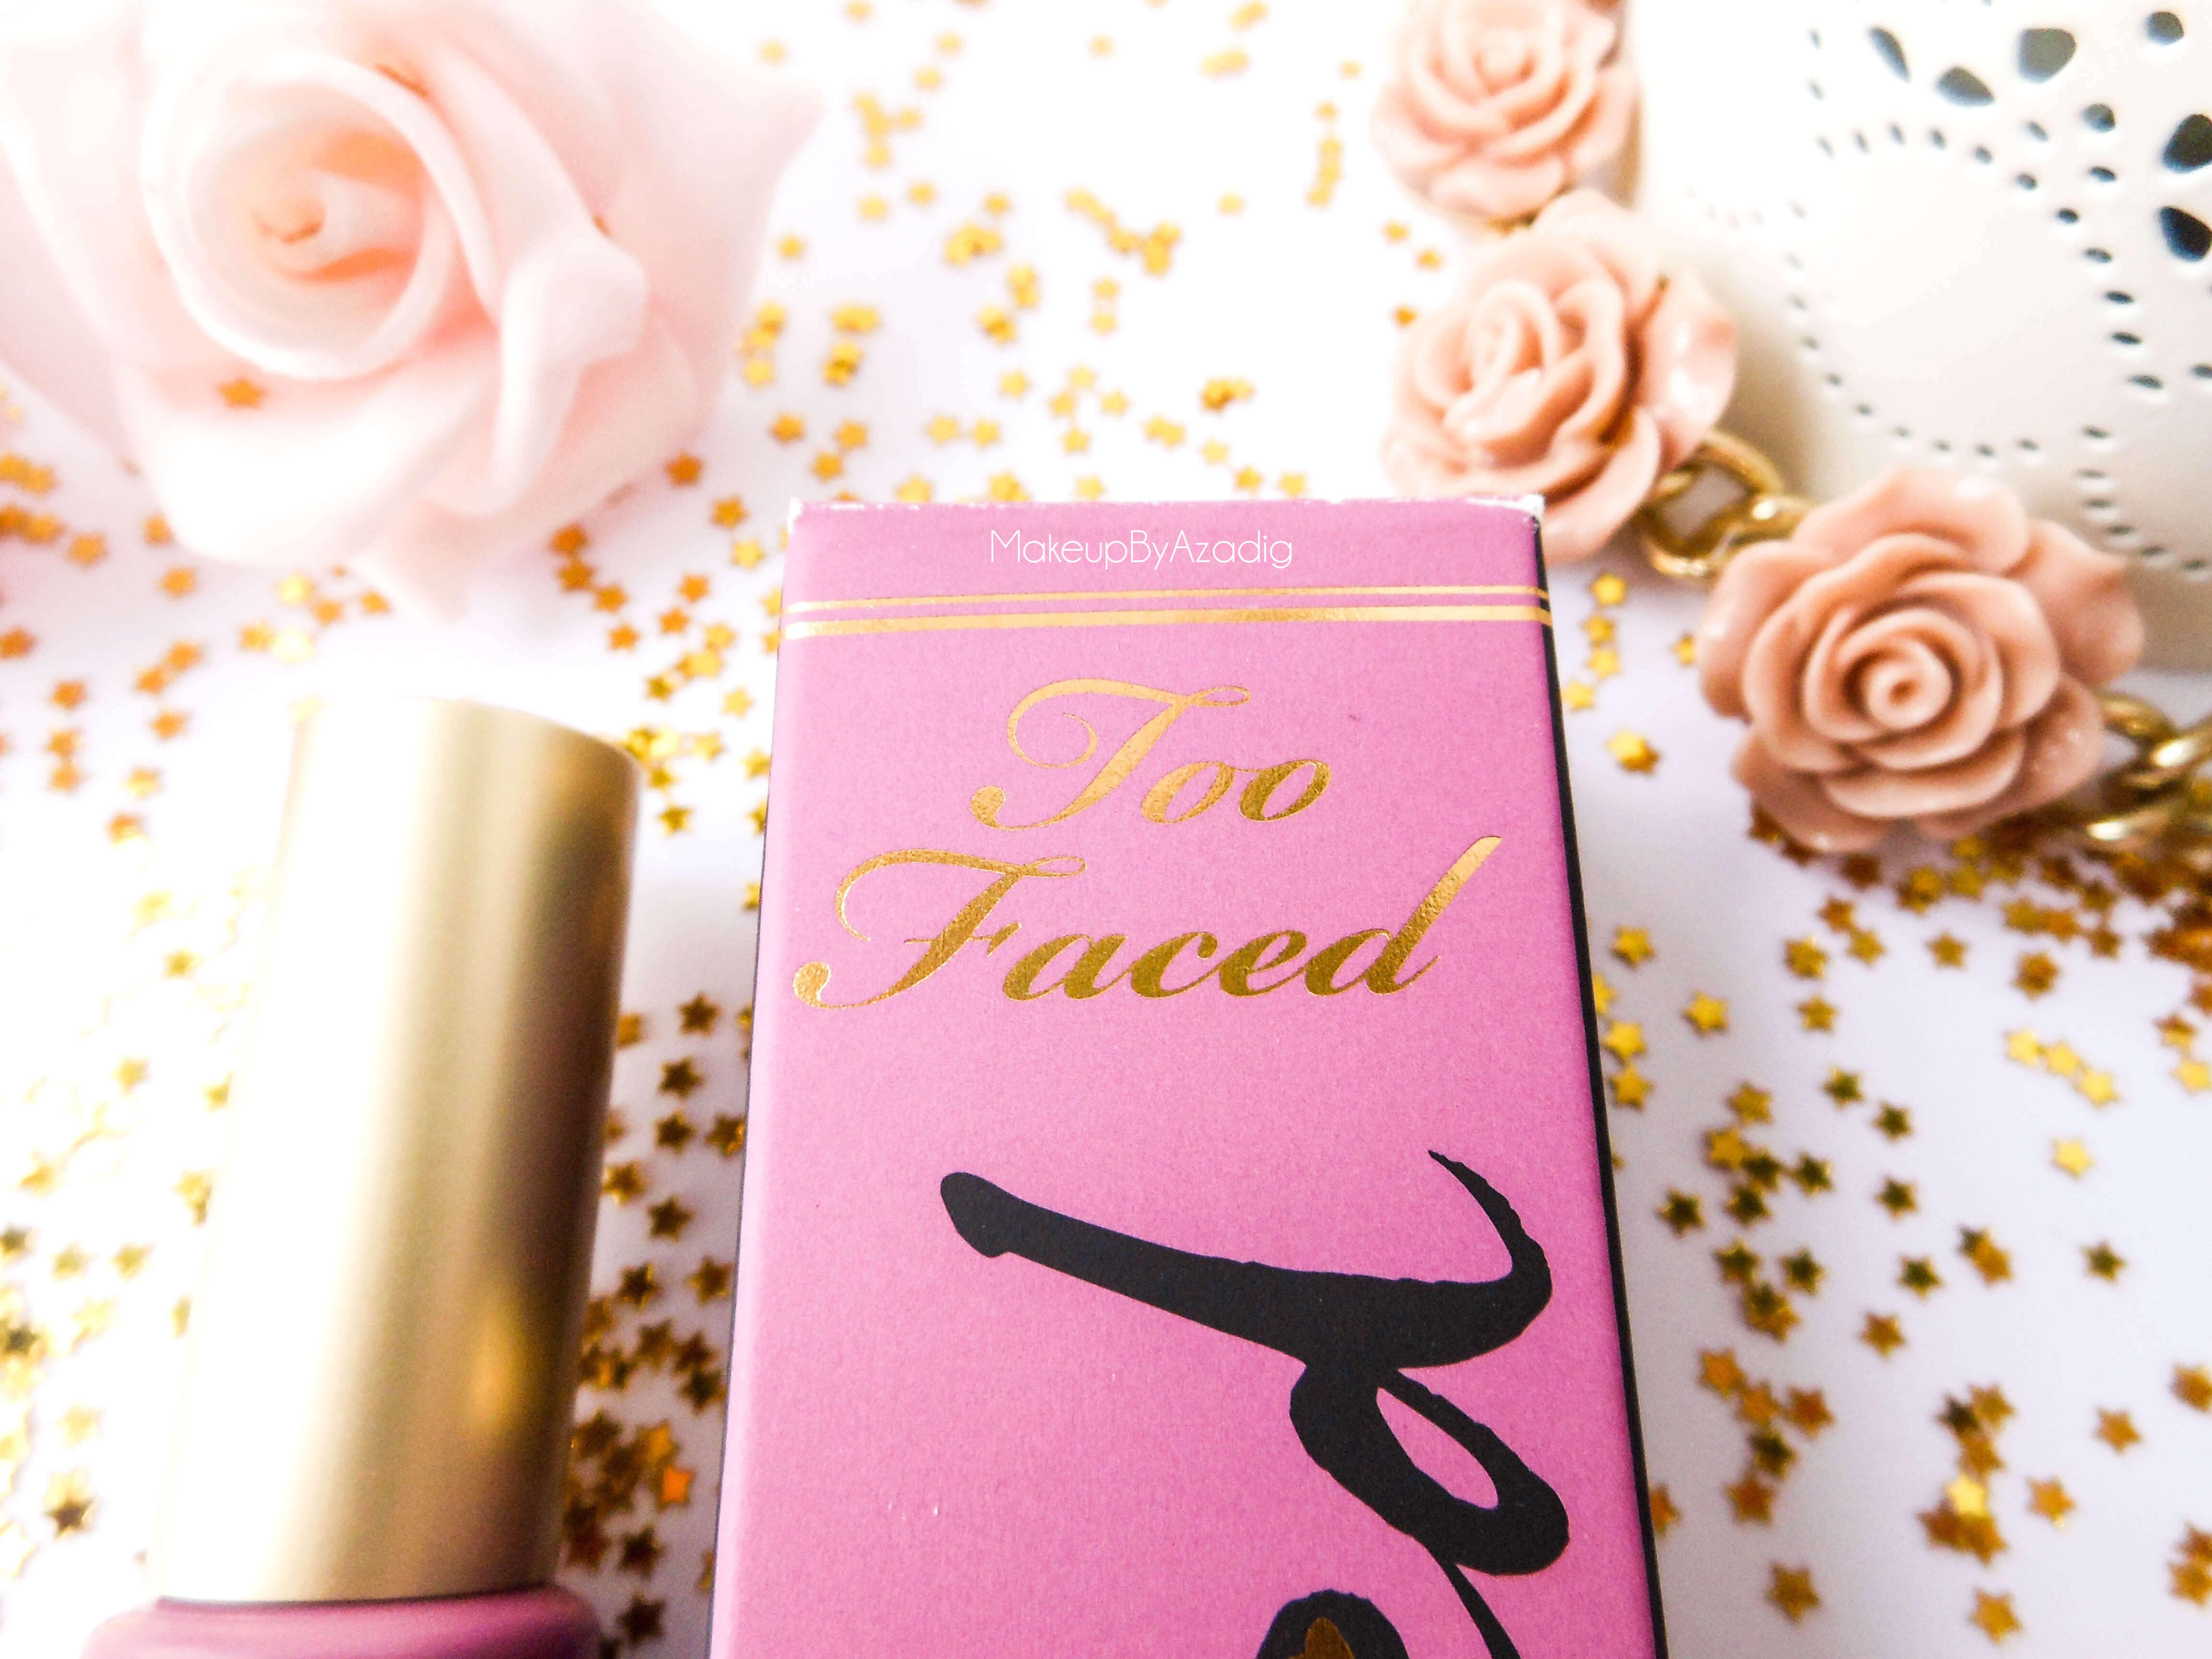 makeupbyazadig-troyes-too-faced-melted-getmelted-fig-melted-matte-blog-influencer-maquillage-gold